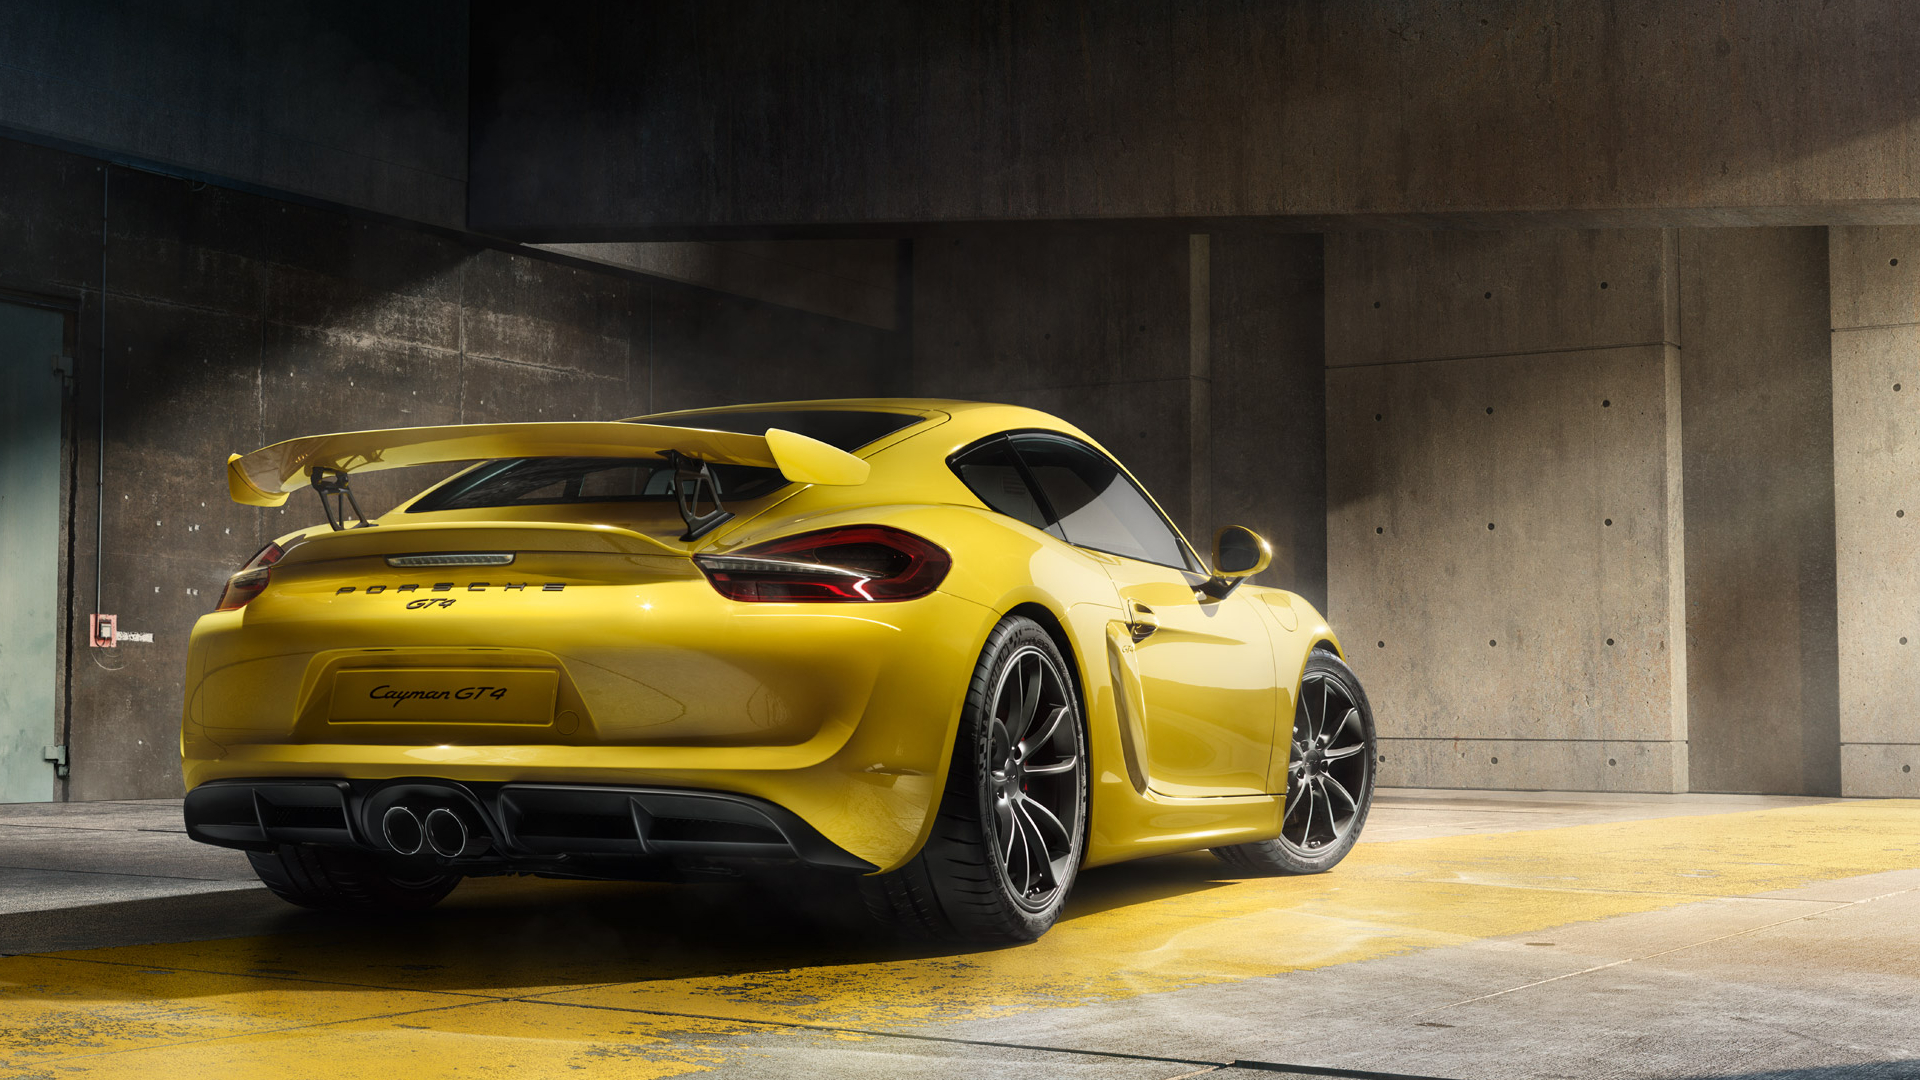 Cayman Gt4 Iphone Wallpaper 2017